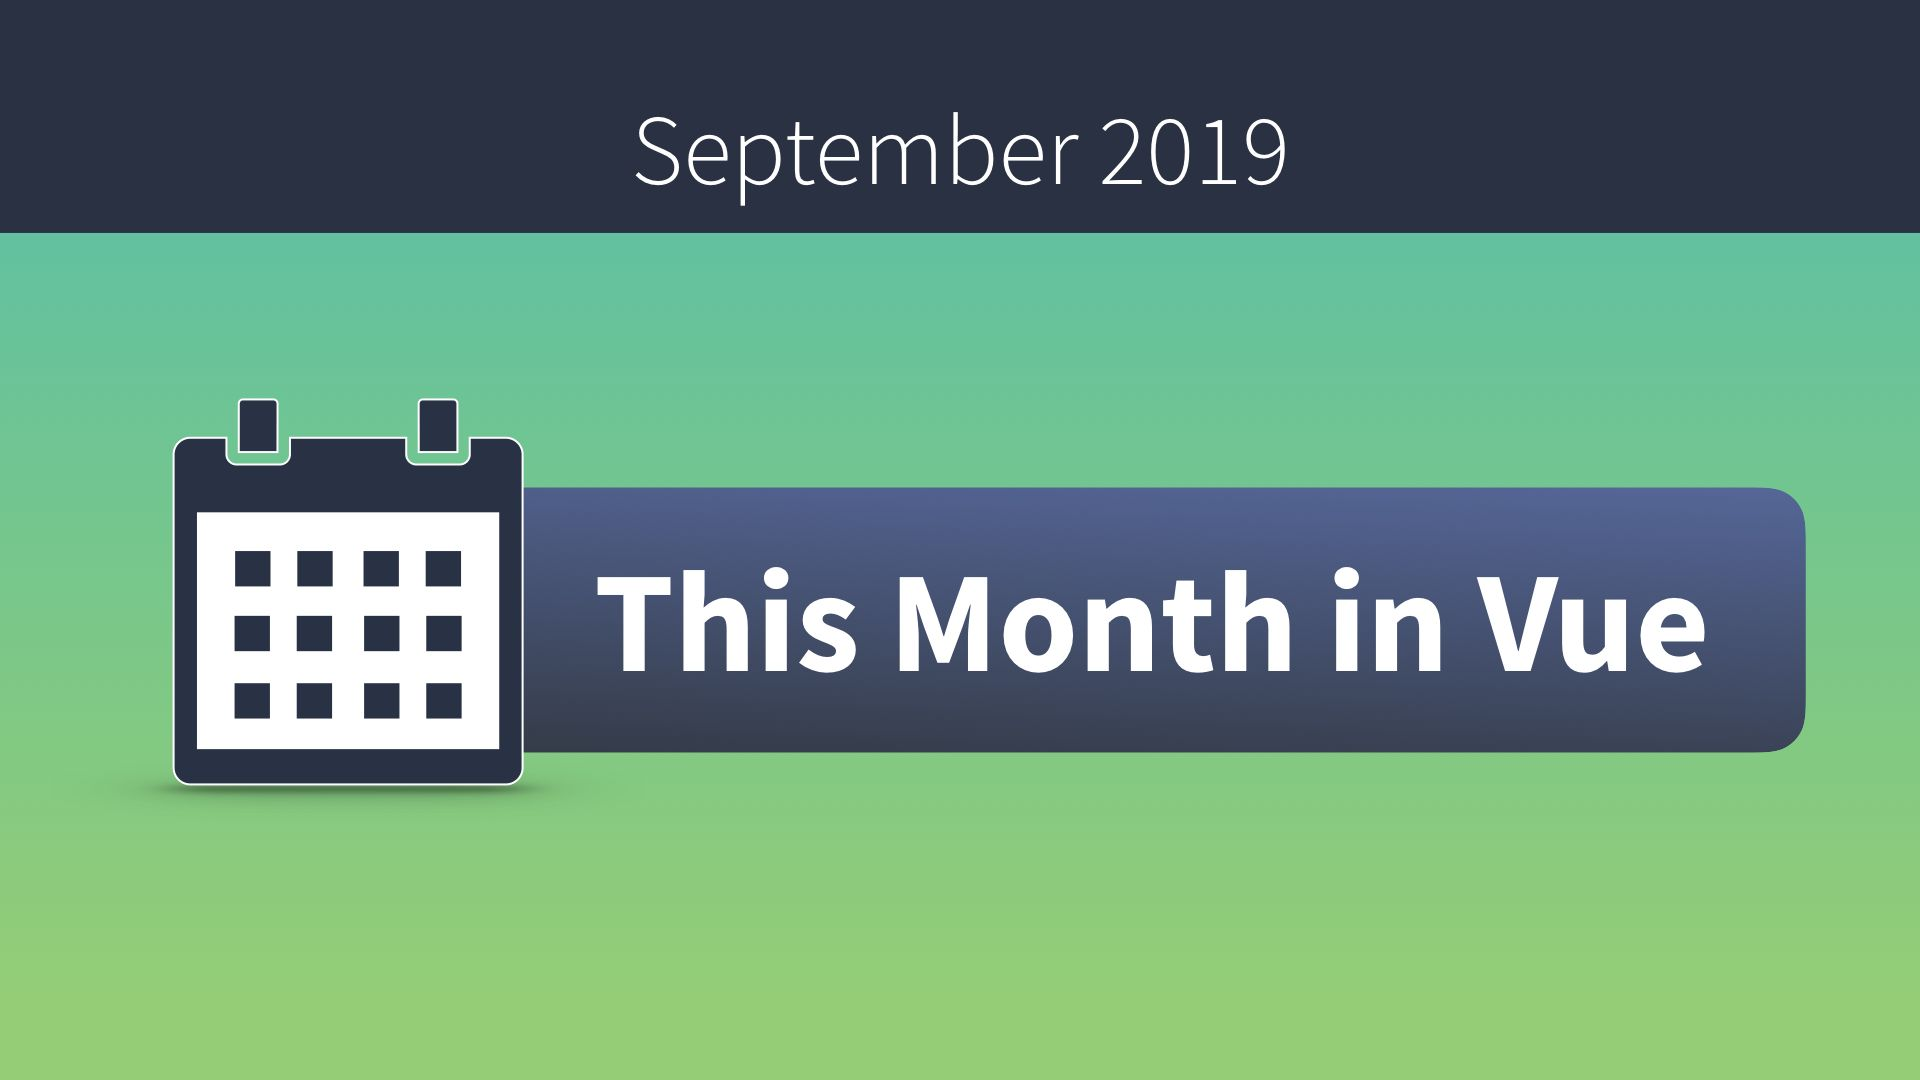 This Month in Vue - September 2019